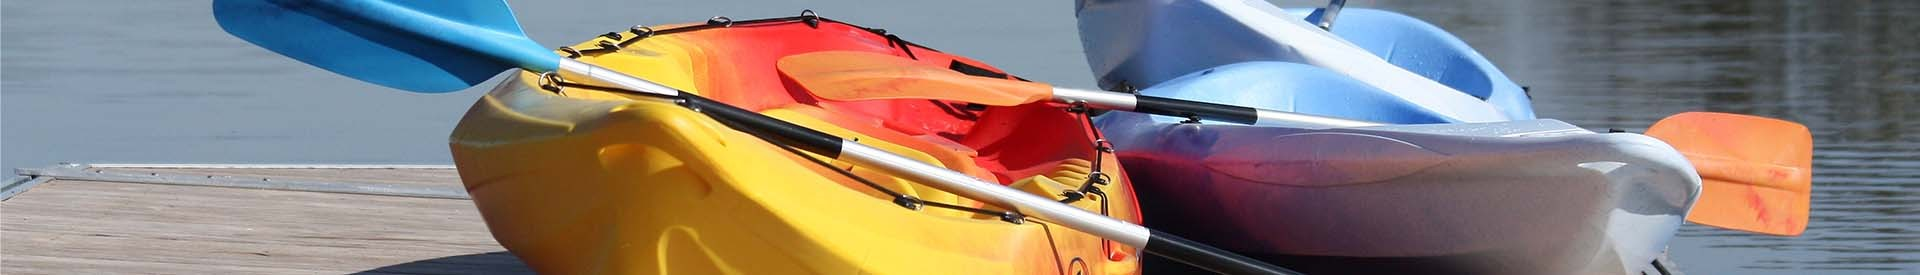 kayak-frossay-st-brevin-activites-nautiques-258